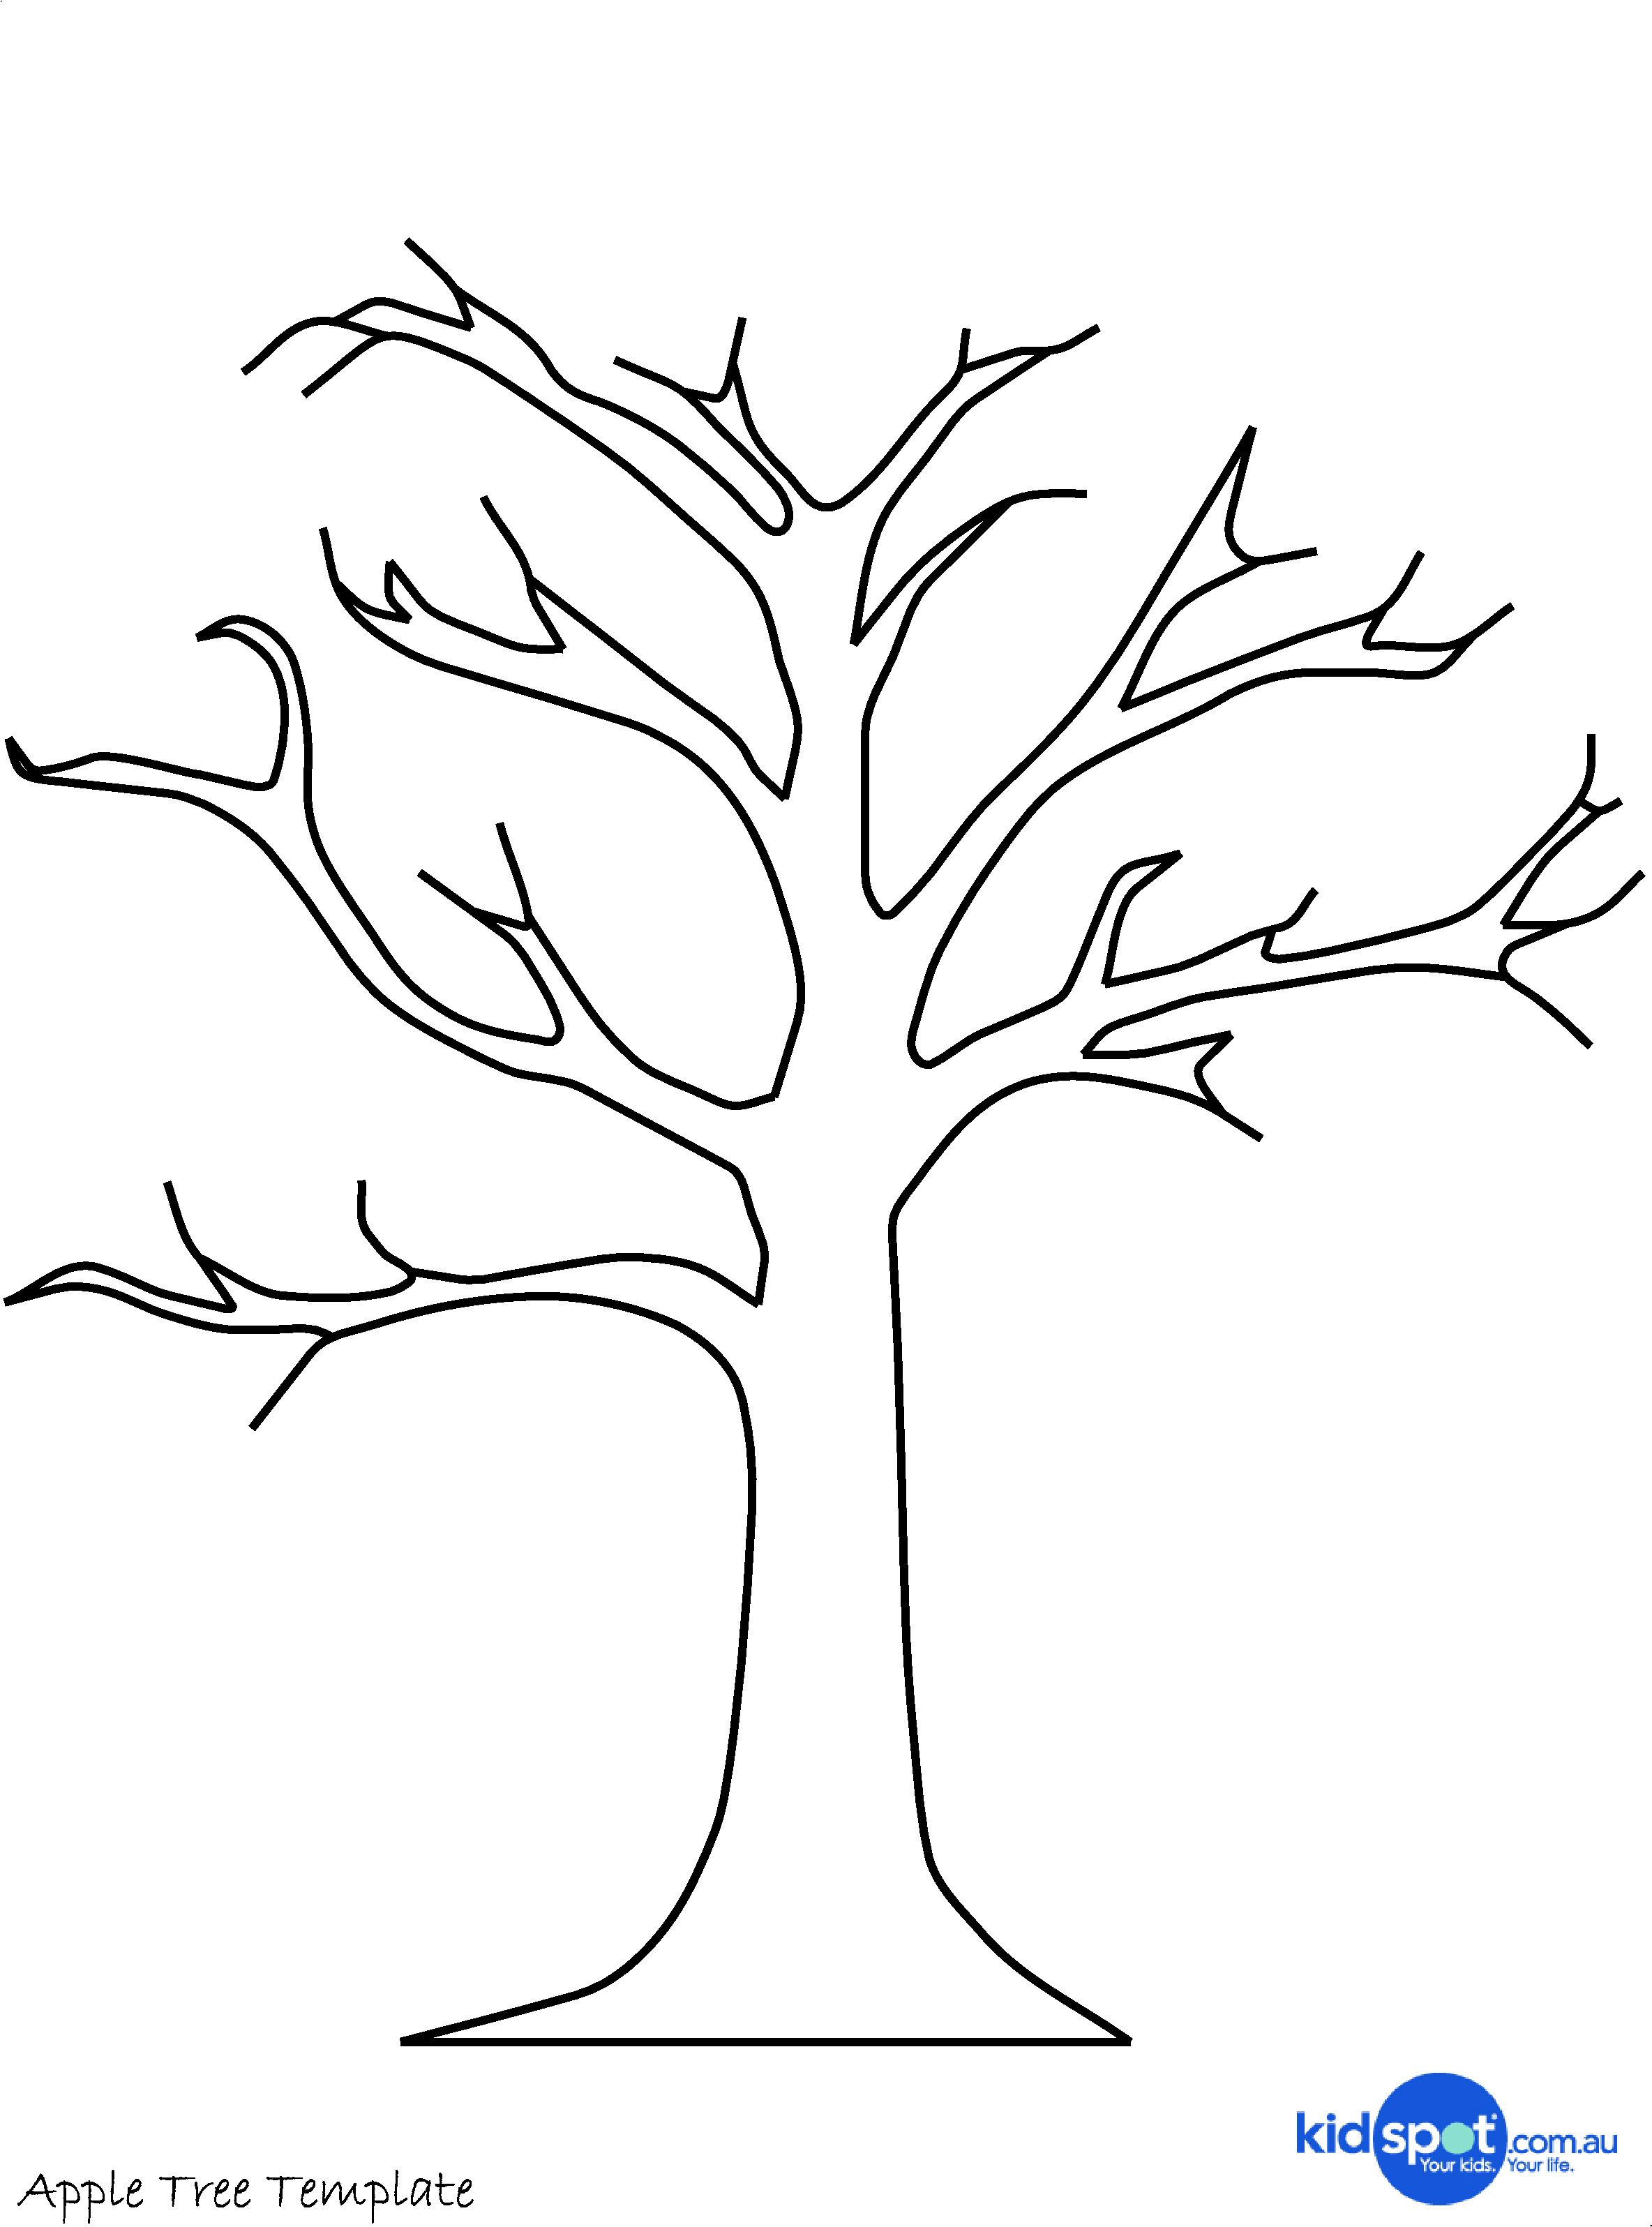 tree craft cork stamp apple tree clip art tree crafts tree